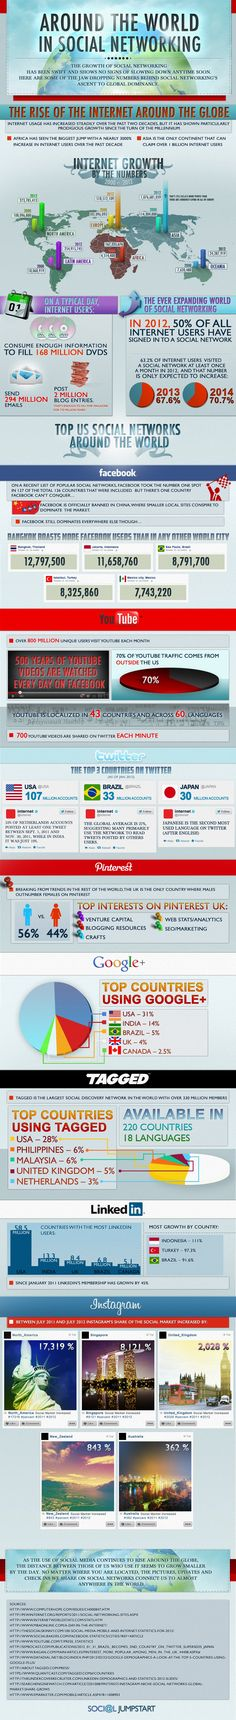 How the World Consumes Social Media Social media is trending globally. Check out this infographic to learn about how quickly social media has become prominent around the world. 'Around the world in social networking' by Social Jumpstart and Hasai Inbound Marketing, Marketing Digital, Marketing Trends, Facebook Marketing, Internet Marketing, Online Marketing, Social Media Marketing, Content Marketing, Affiliate Marketing